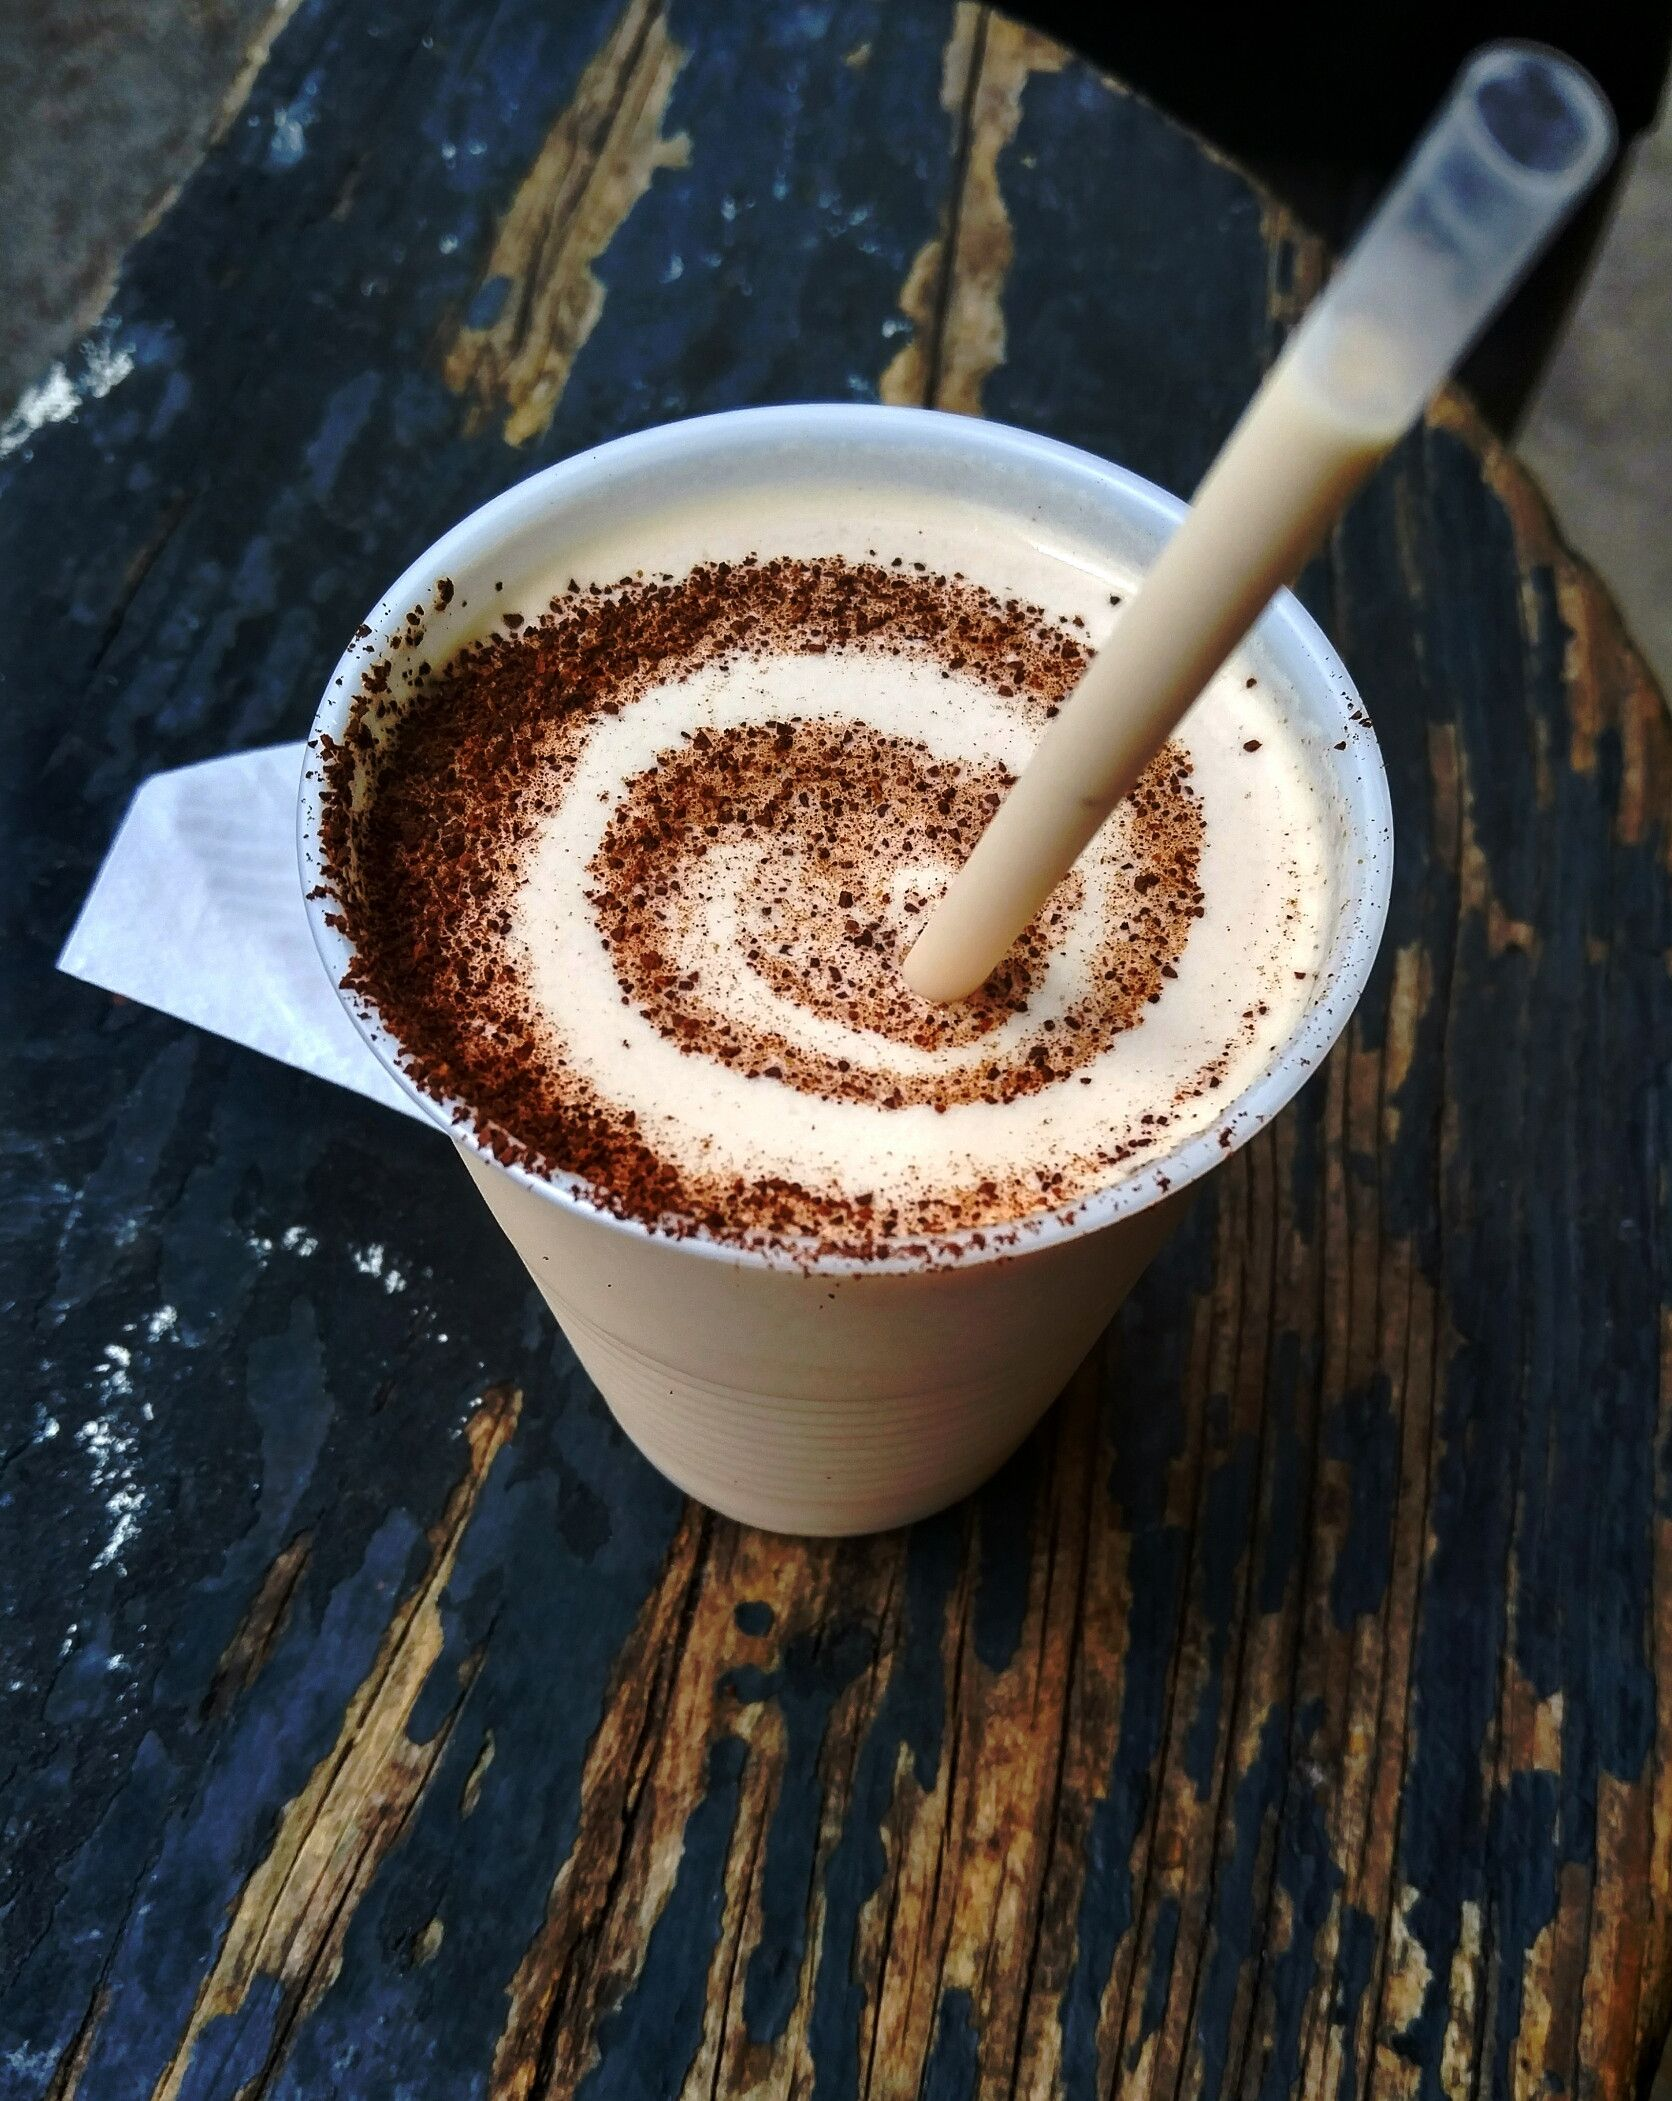 [OC] Frozen Irish coffee (with a disproportional amount of